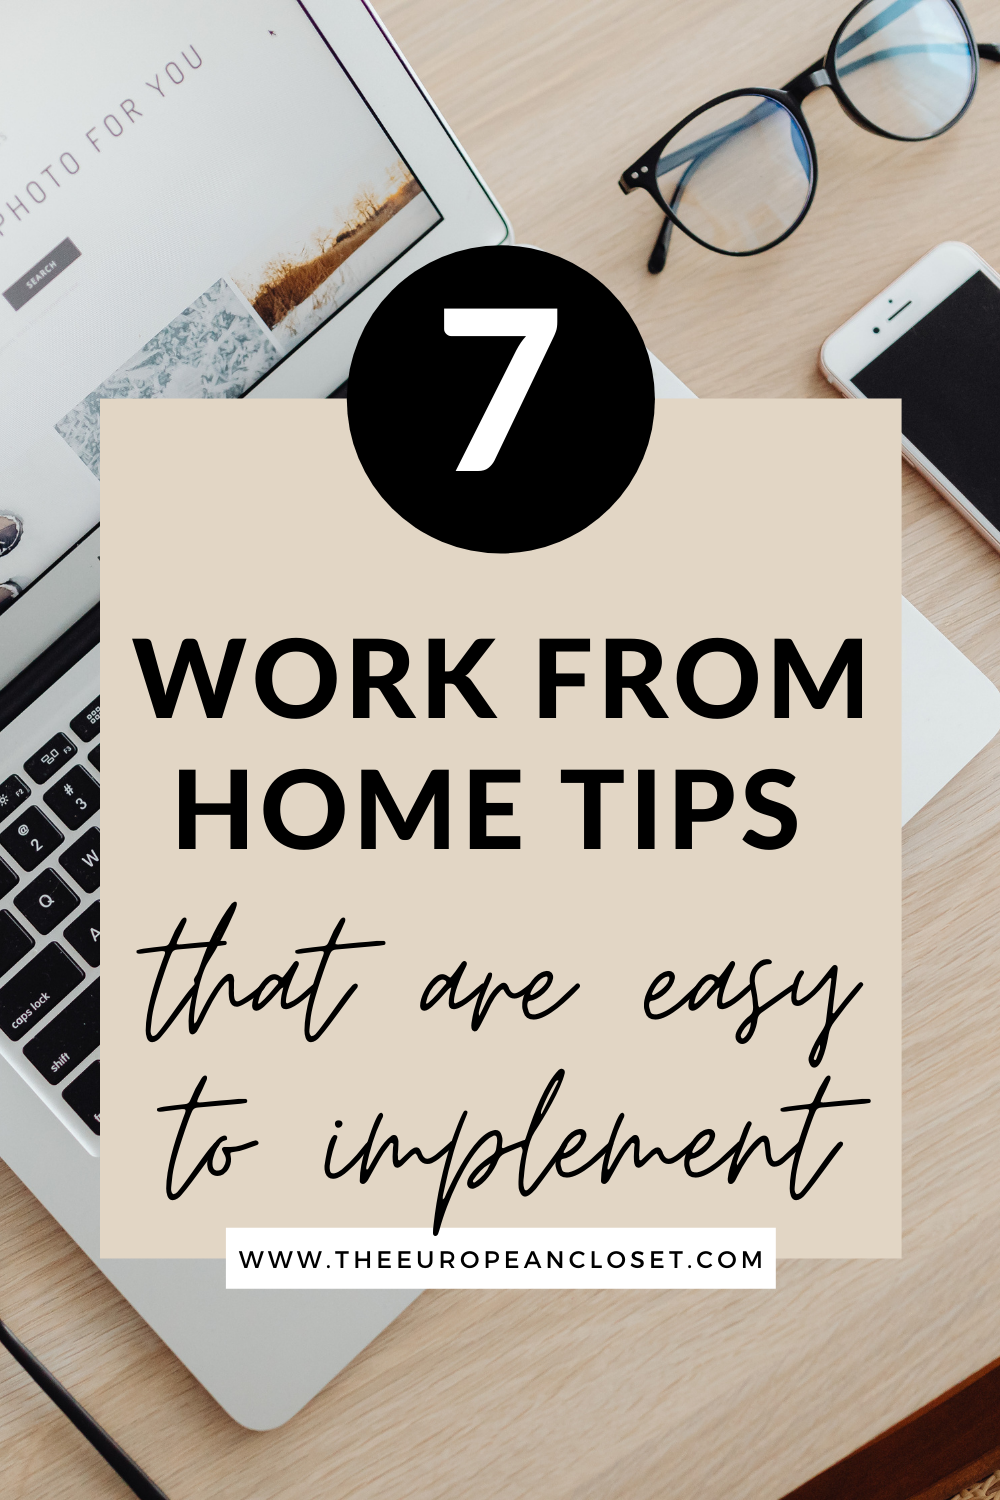 Here are my top 7 tips on how to work from home productively. Follow them and you'll be a productivity machine in no time.